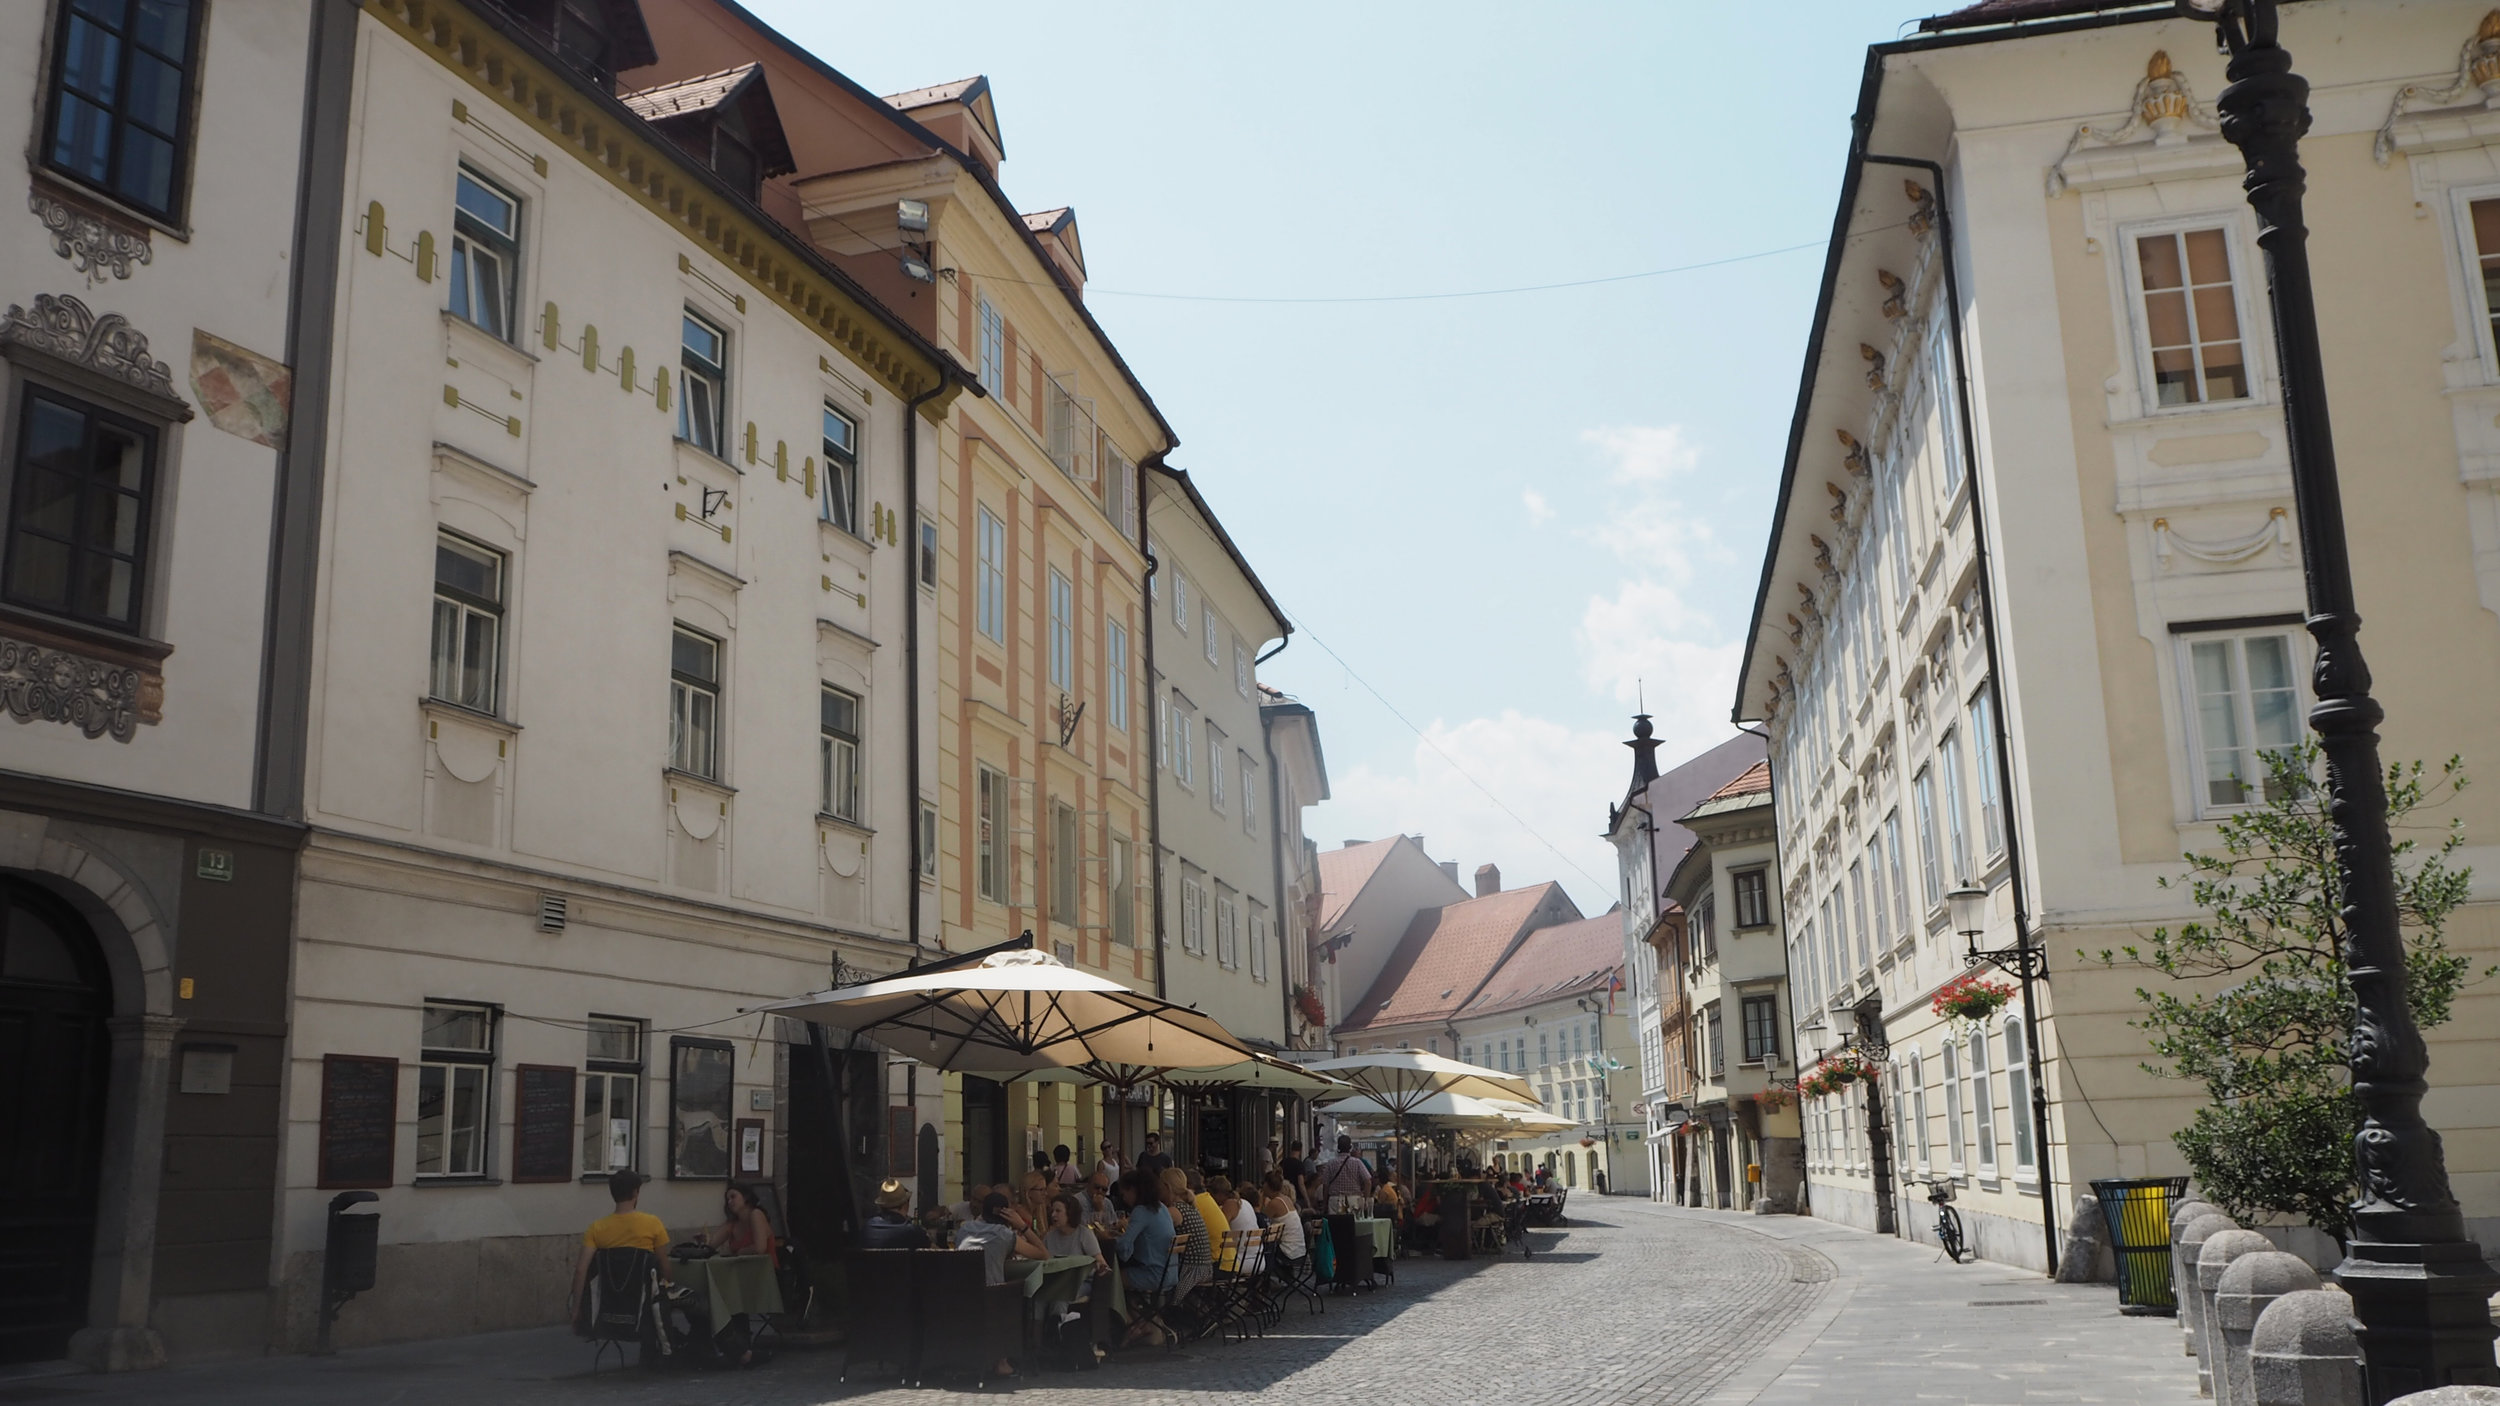 The streets of Ljubljana Old Town, Slovenia.